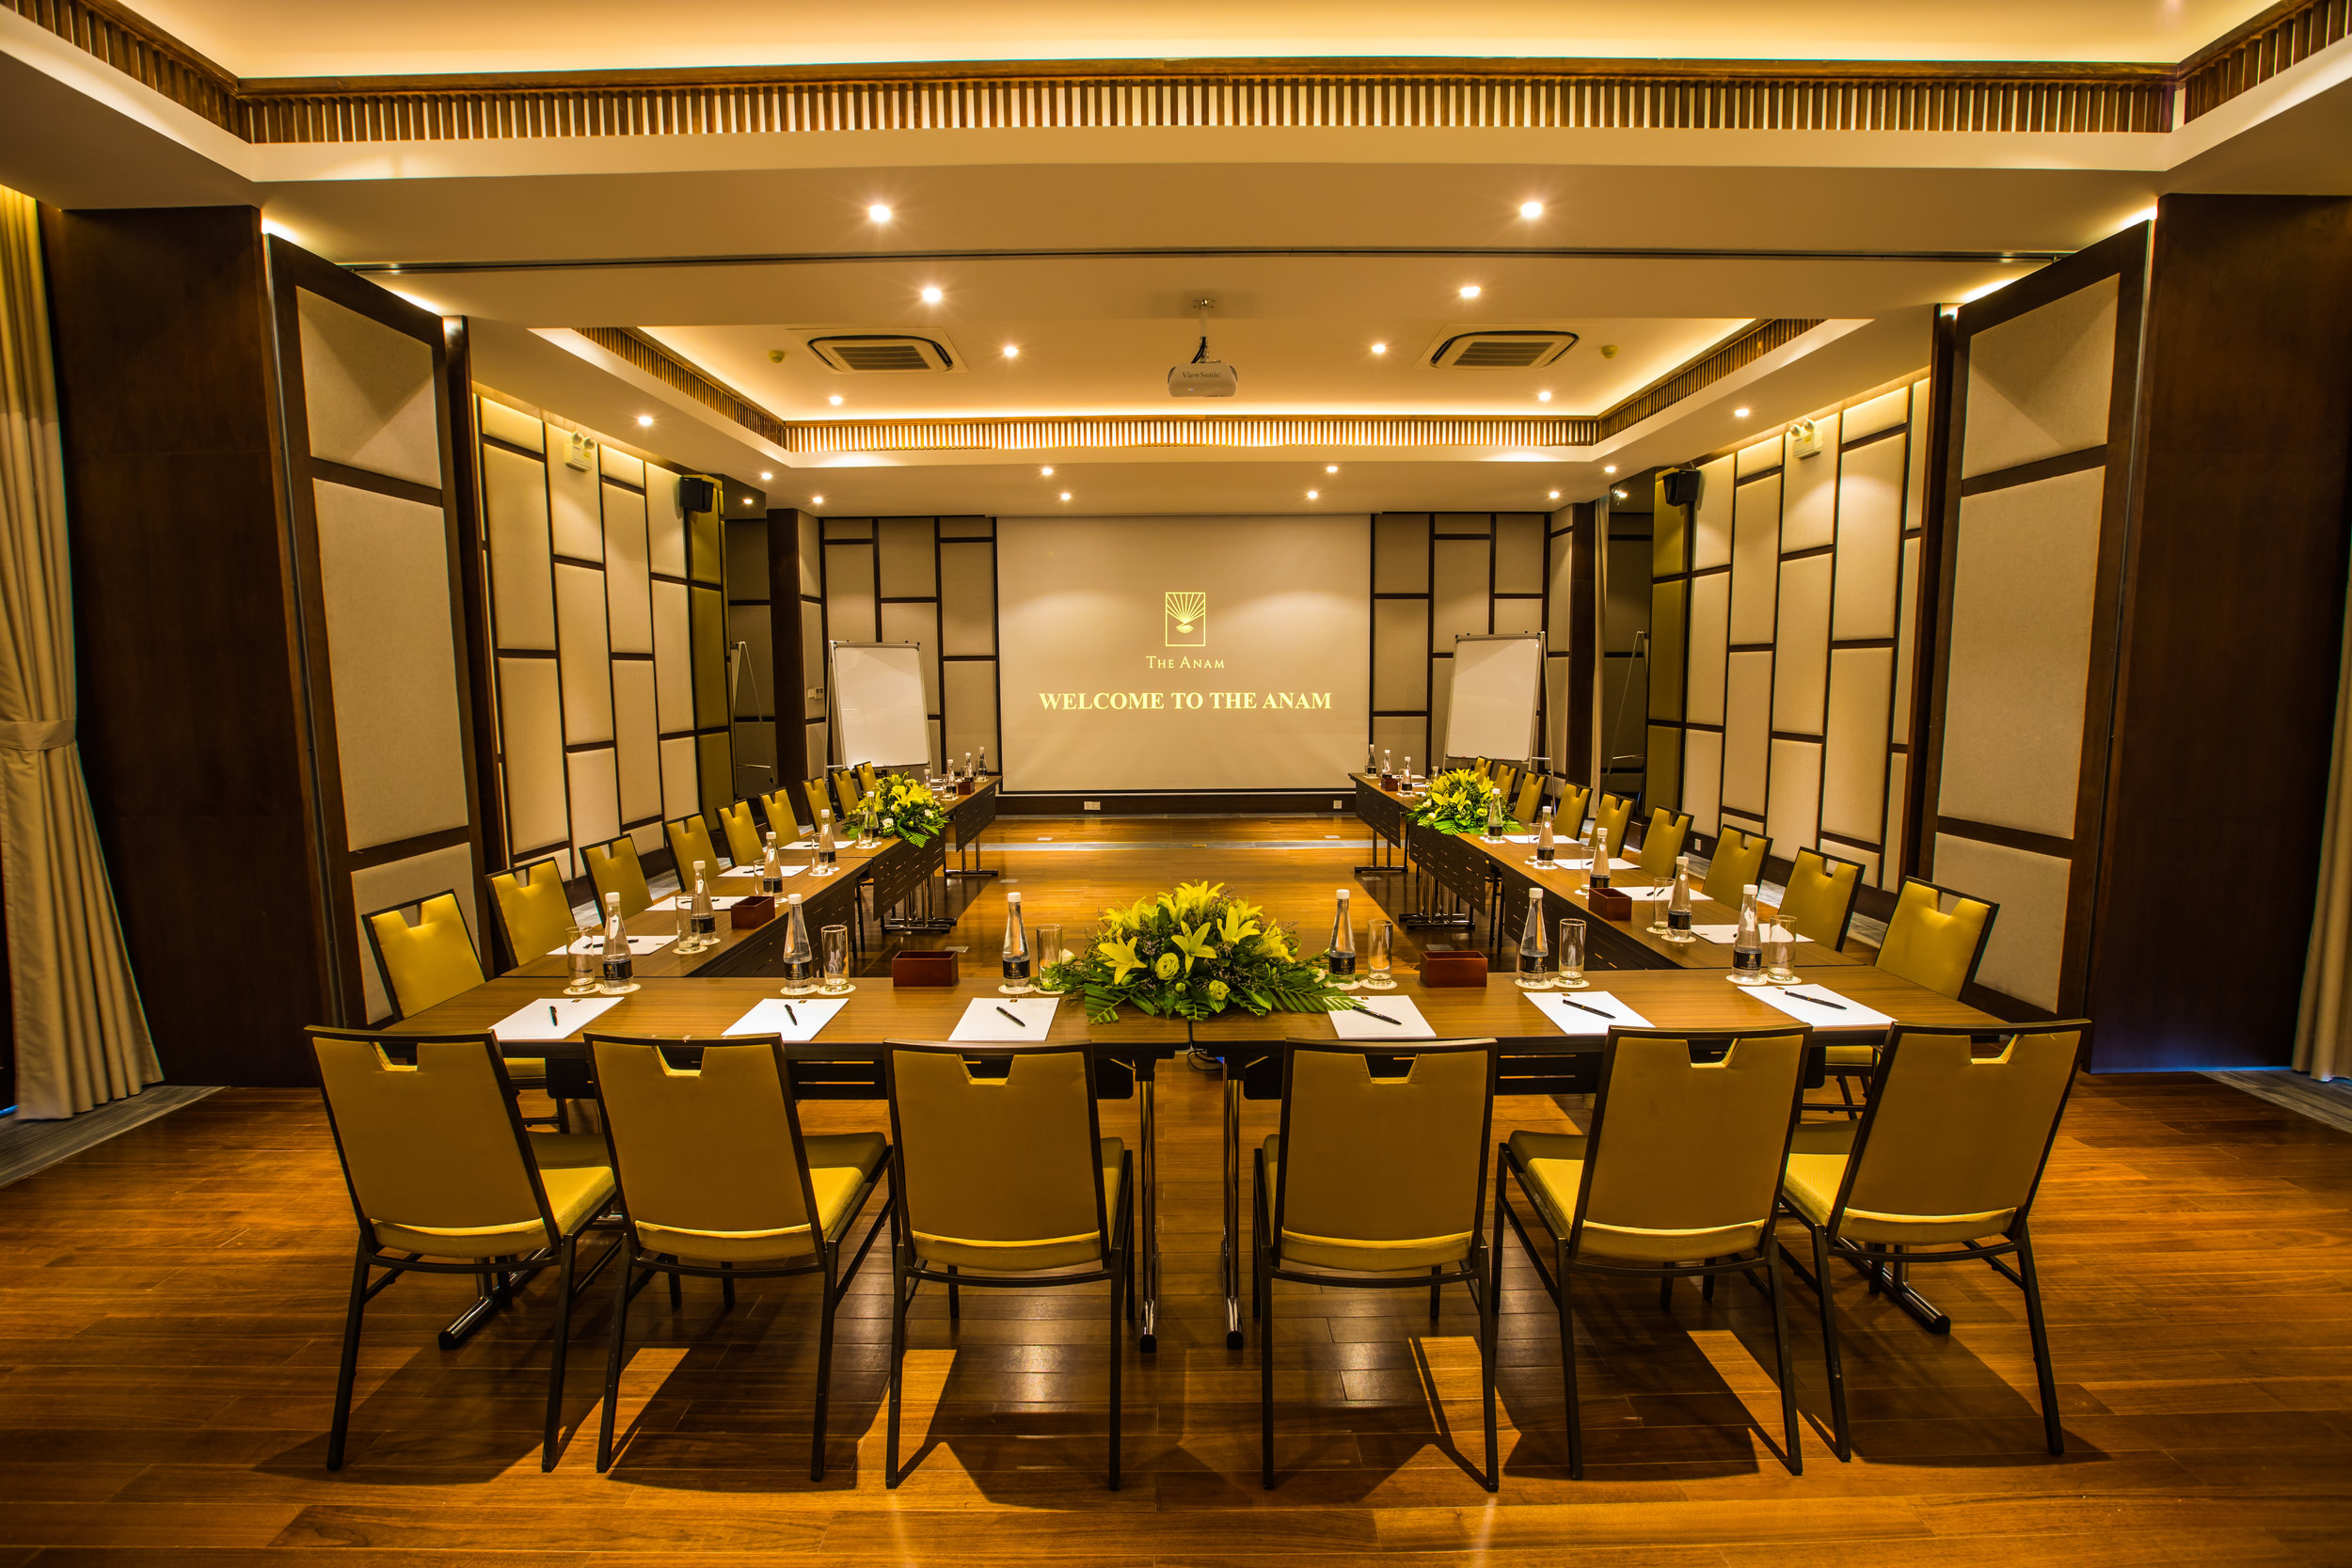 Meet in Style - The Anam's indoor meeting rooms offer state-of-the-art facilities and equipment while outdoor locations offer attendees the chance to kick off their shoes and get creative with the sound of the waves as inspiration.